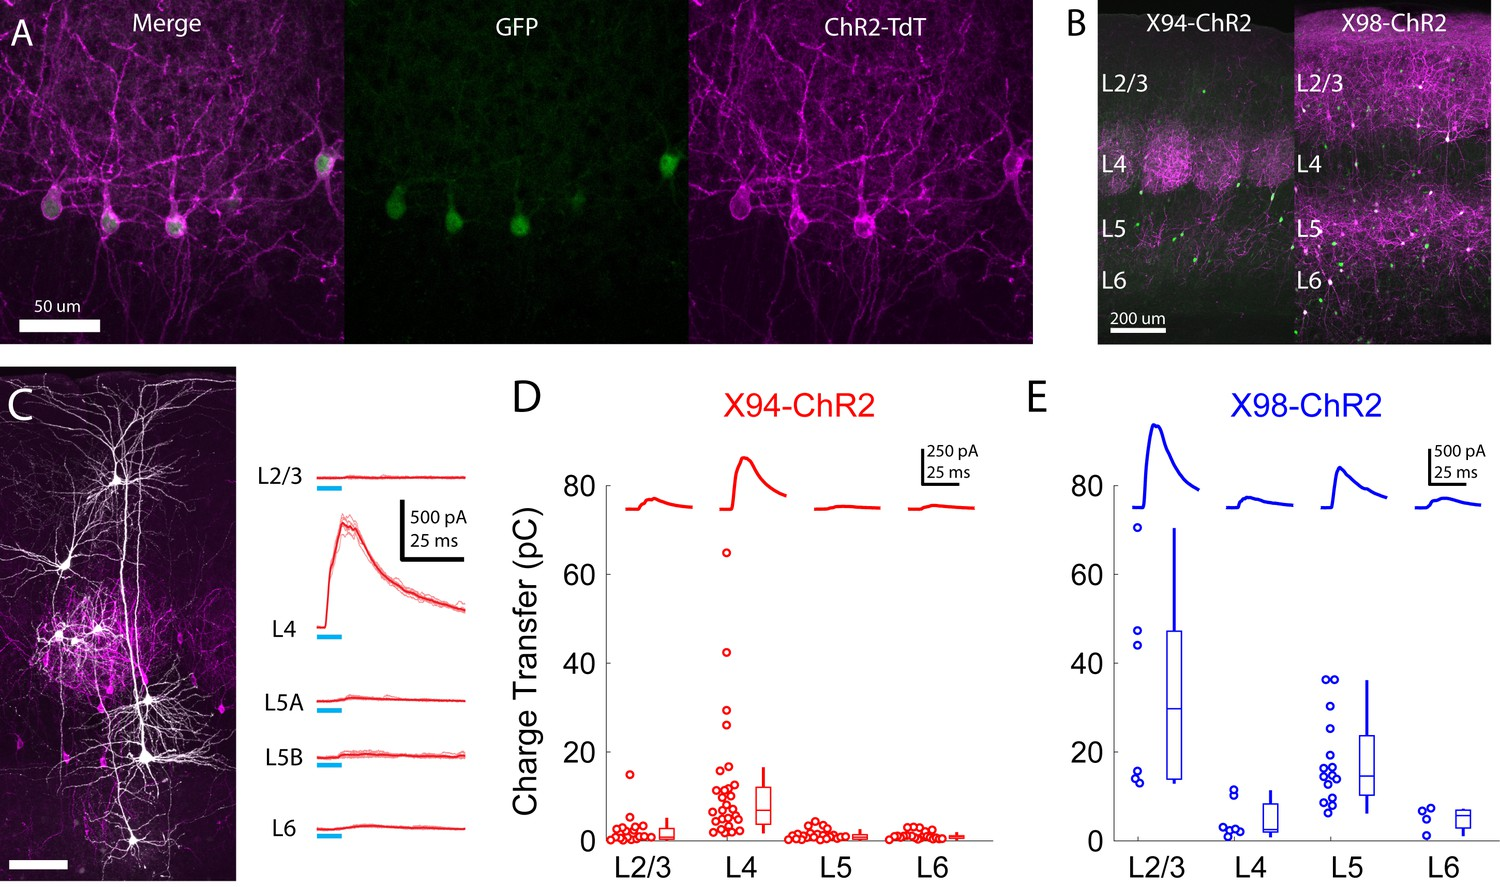 Complementary networks of cortical somatostatin interneurons enforce